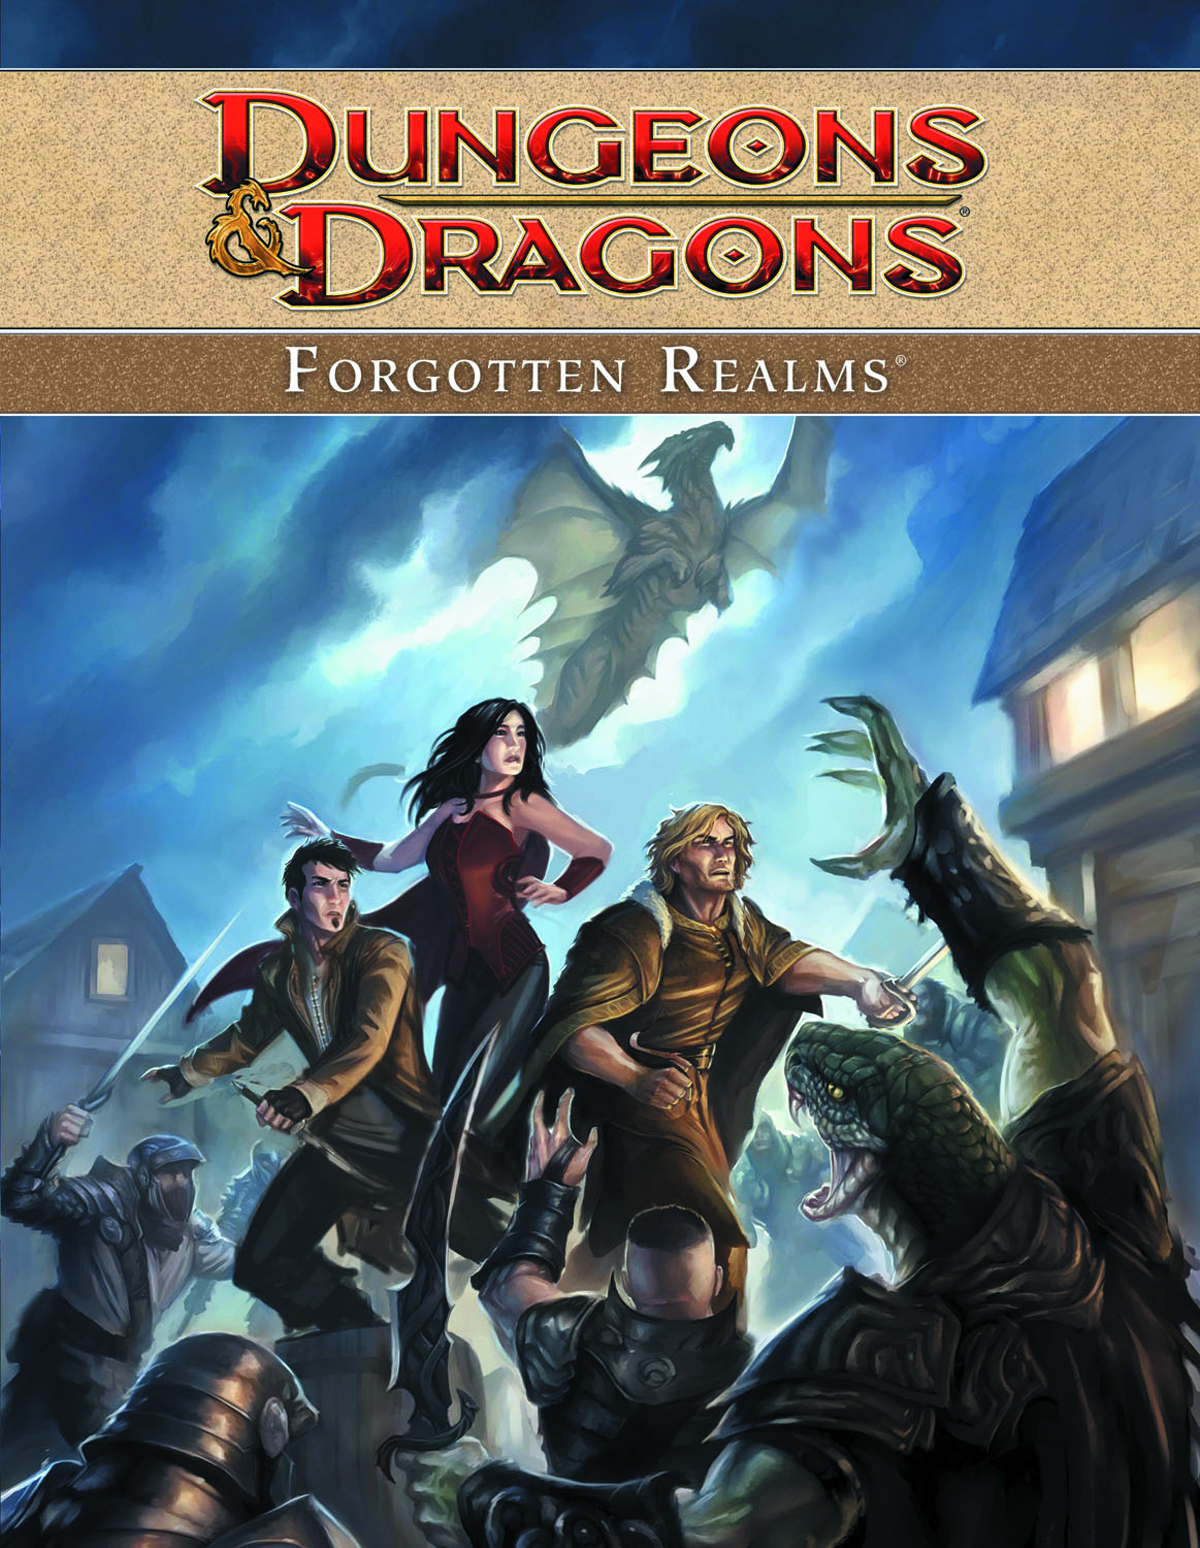 DUNGEONS & DRAGONS FORGOTTEN REALMS TP